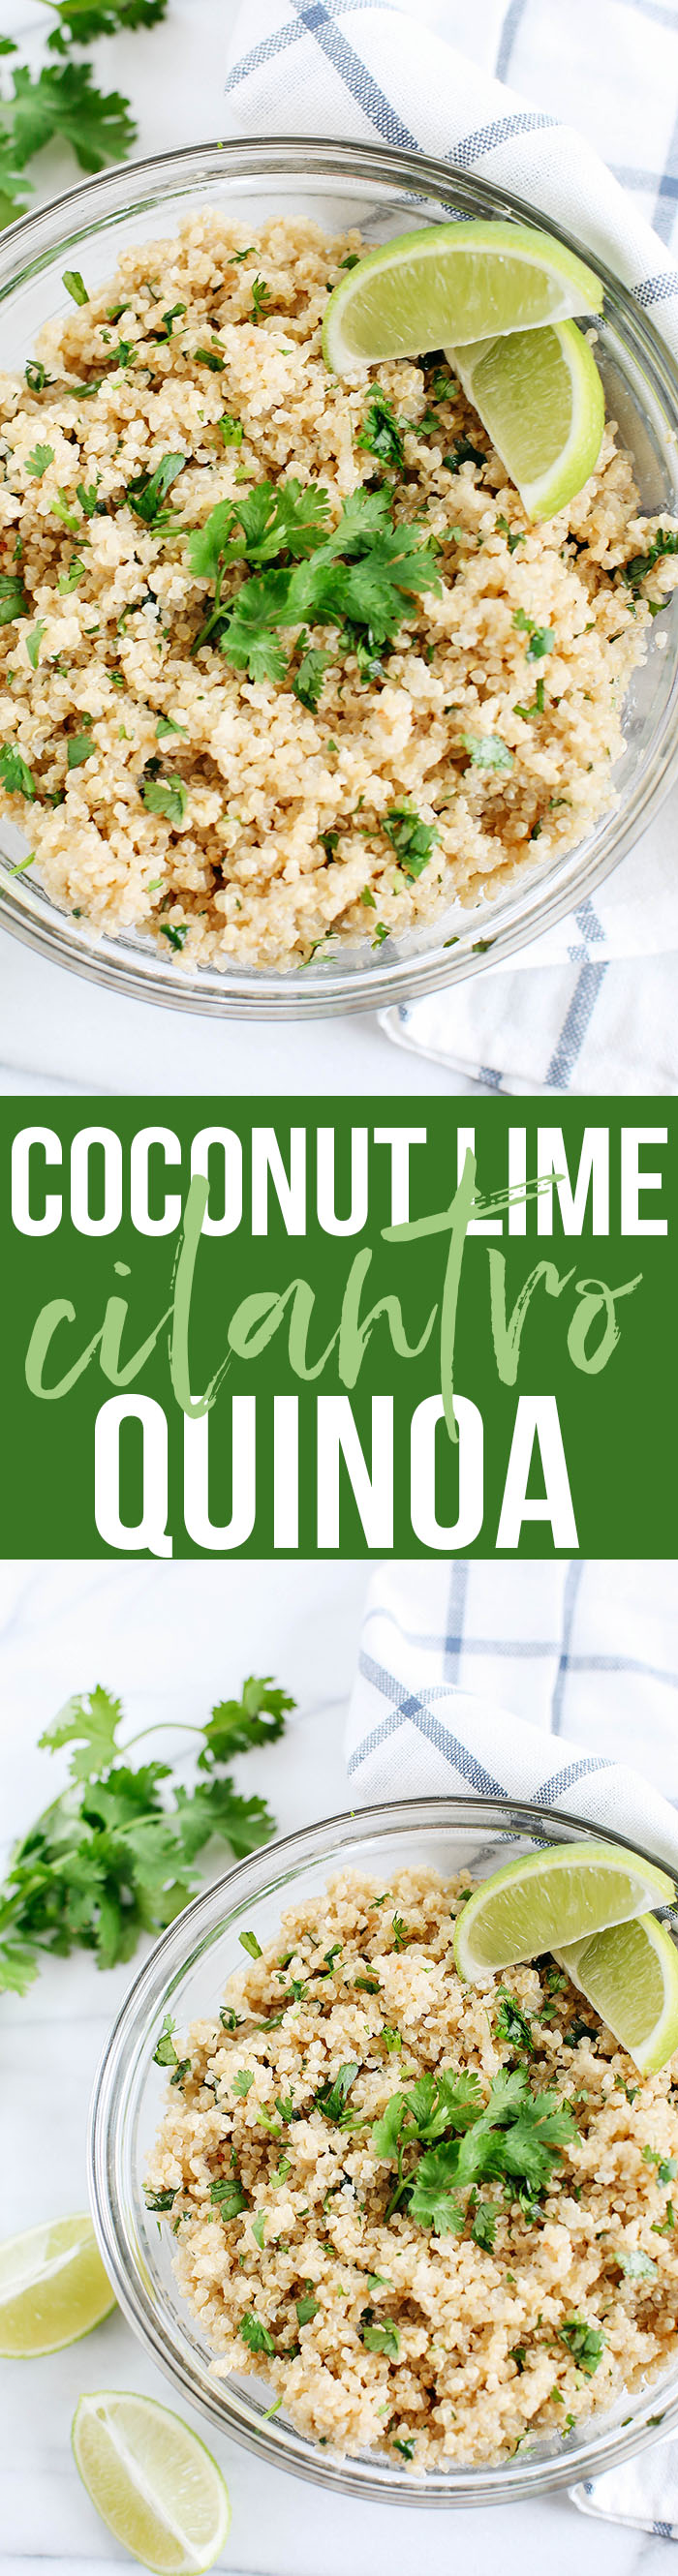 This Coconut Lime Cilantro Quinoa is easily made with just a few simple ingredients and makes the perfect healthy side dish to any meal!